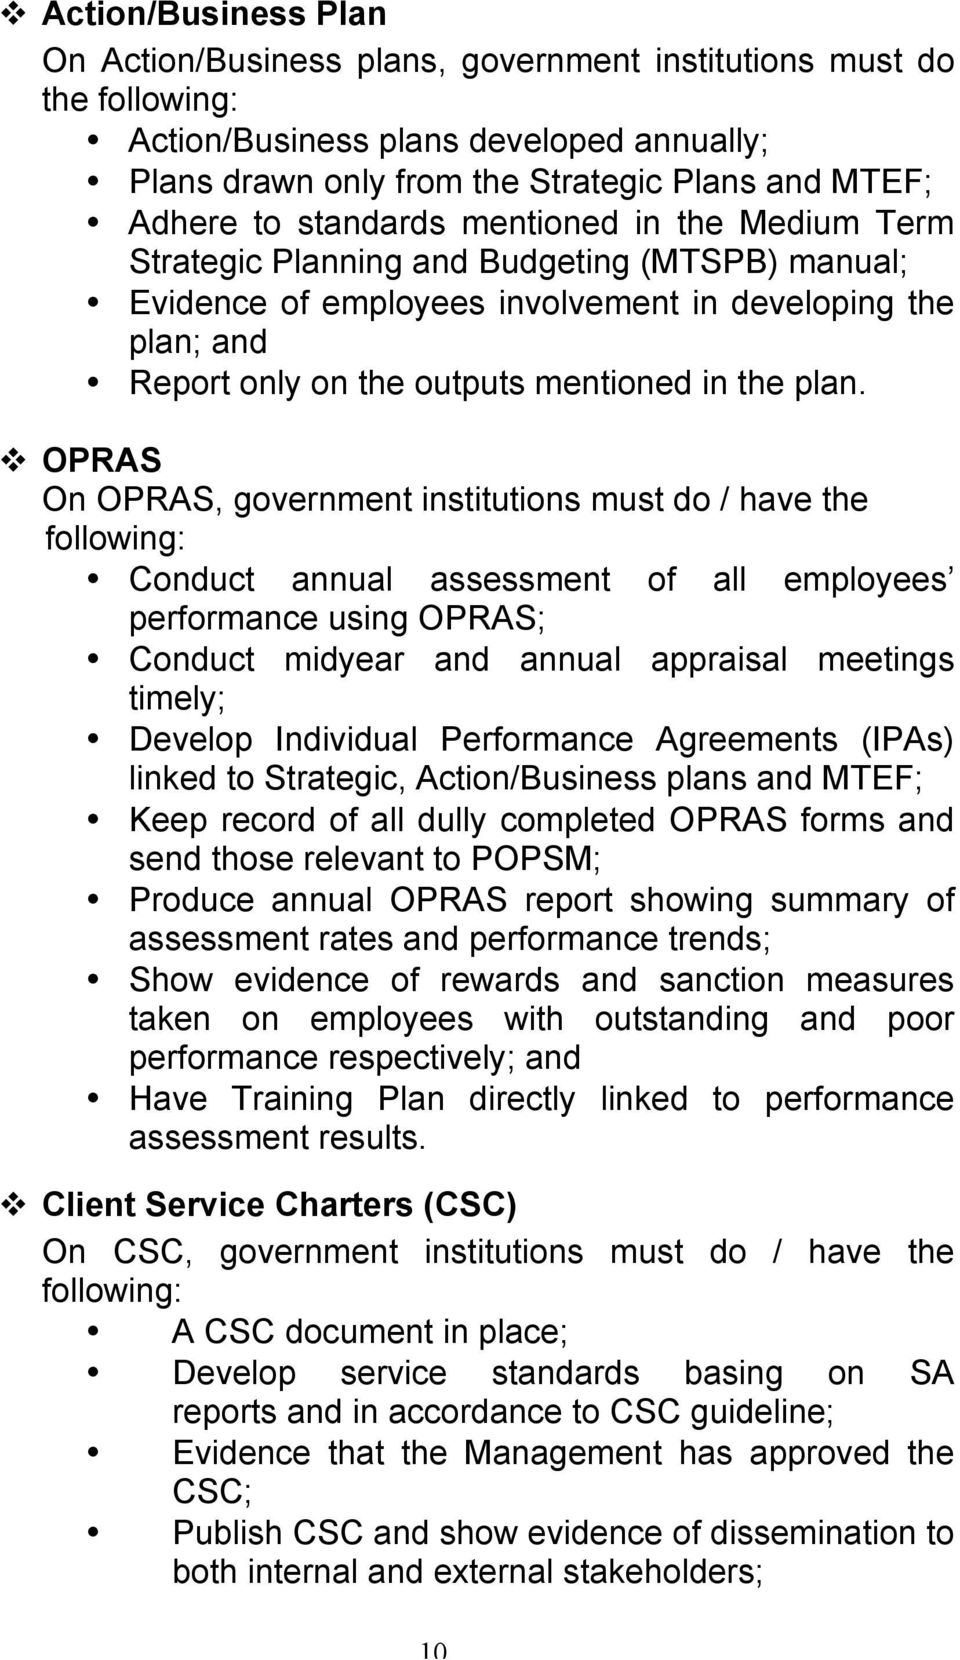 OPRAS On OPRAS, government institutions must do / have the following: Conduct annual assessment of all employees performance using OPRAS; Conduct midyear and annual appraisal meetings timely; Develop